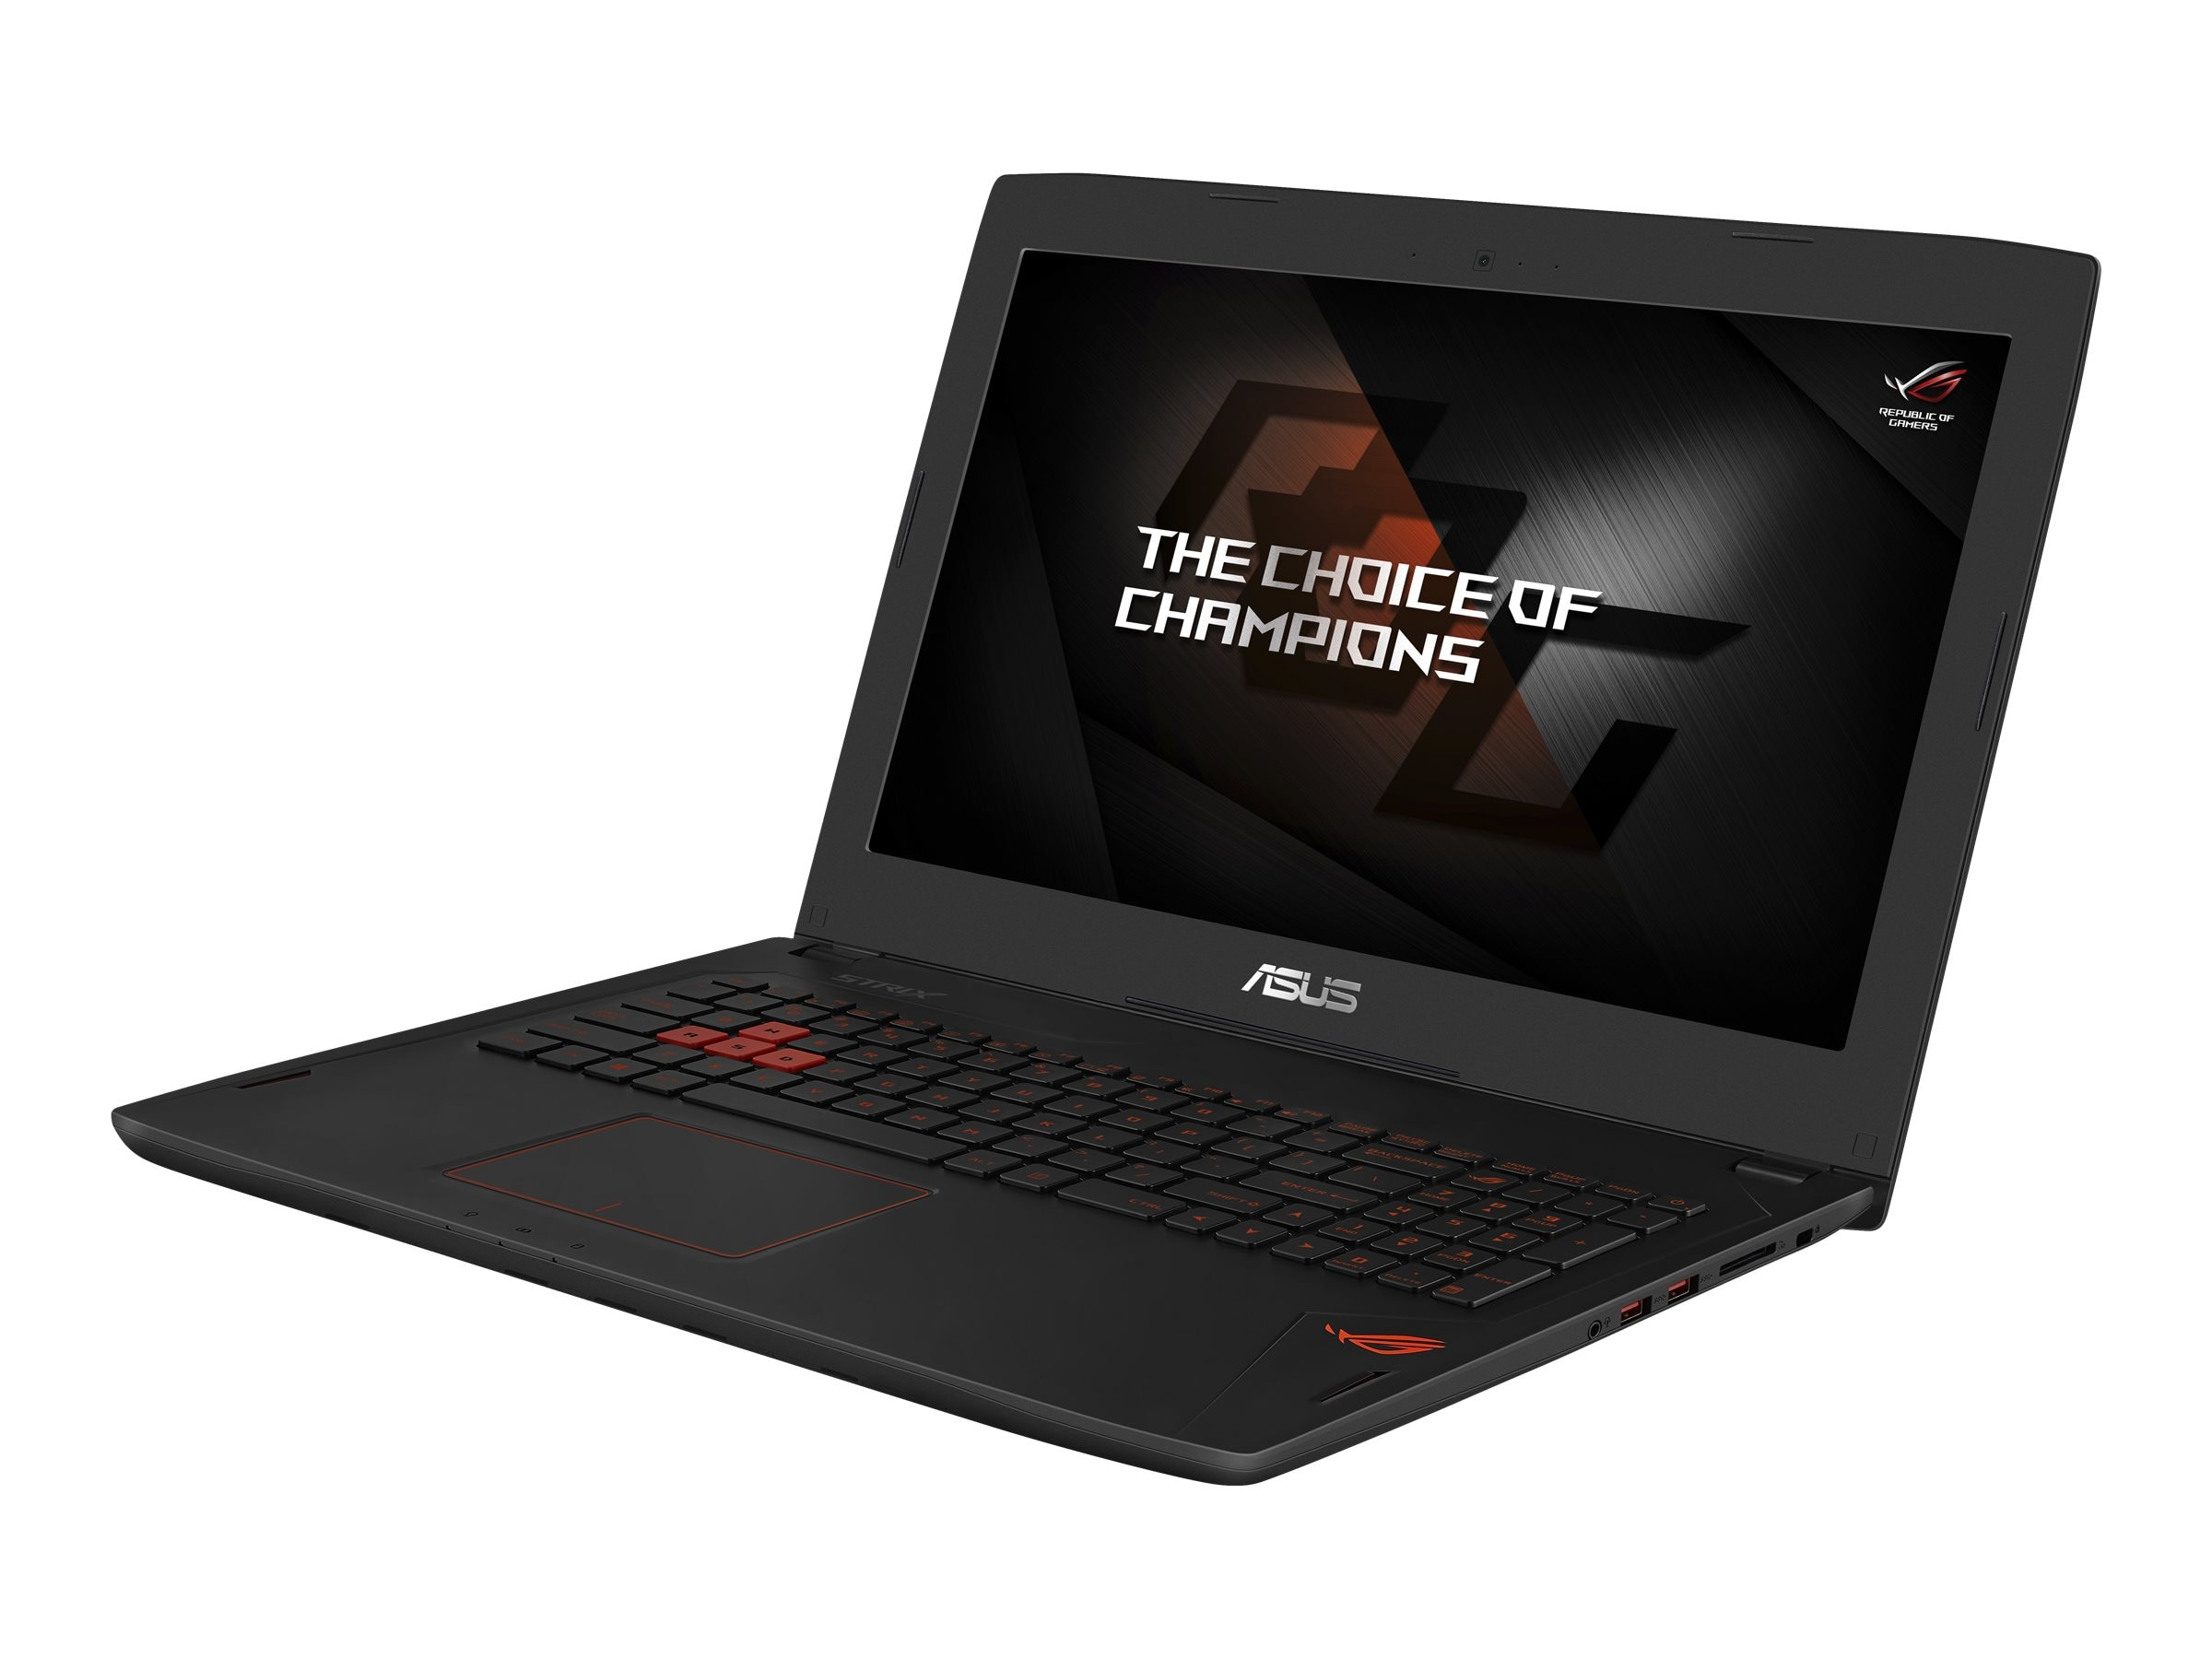 Asus ROG GL502VM-DB71 Core i7-6700Hq 2.6GHz 16GB 1TB ac GNIC BT WC GTX 1060 15.6 FHD W10-64